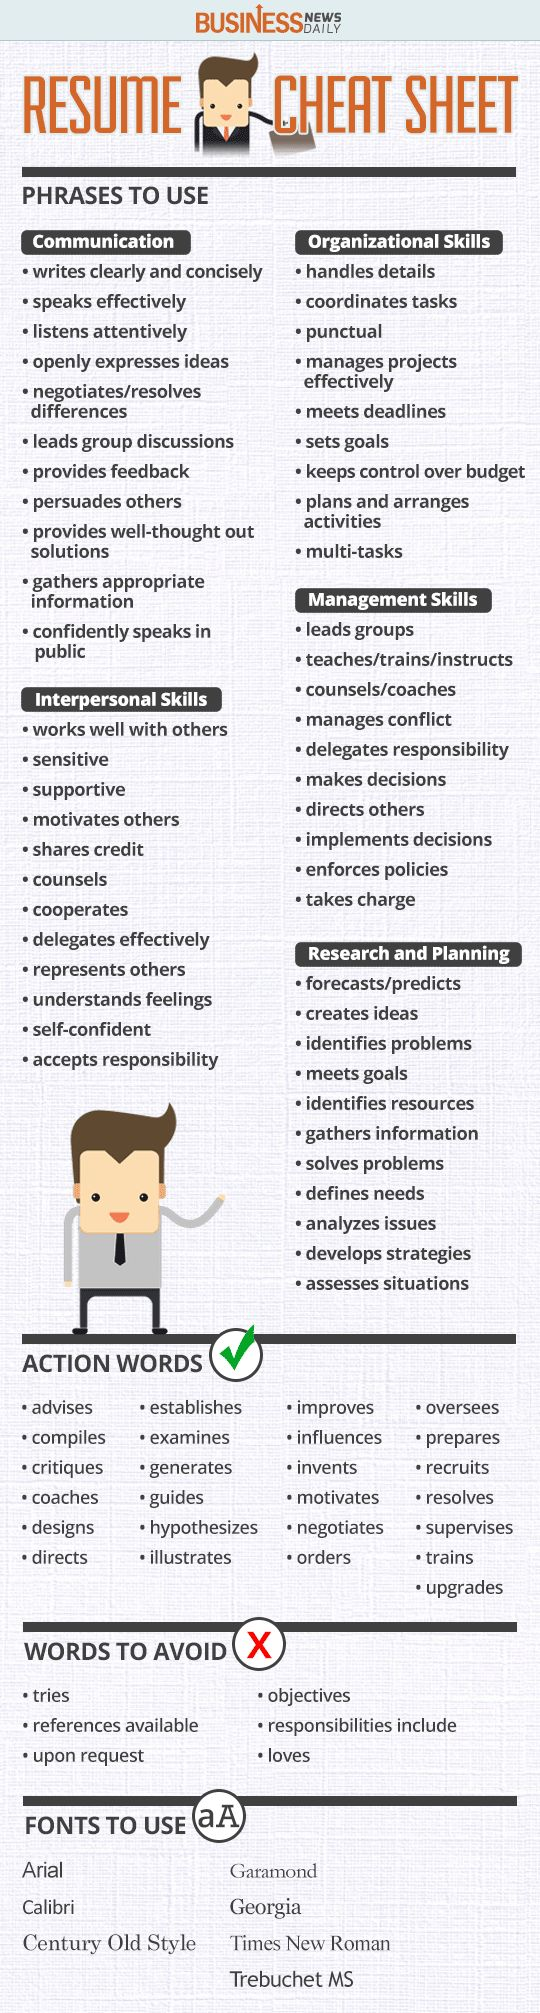 Opposenewapstandardsus  Unique  Ideas About Resume On Pinterest  Cv Format Resume Cv And  With Foxy Resume Cheat Sheet Infographic Andrews Almost Done With A Complete Unit On Employment Which With Amazing Resume Cover Letters Also How To Make A Resume For A Job In Addition Resum And Creative Resume Templates As Well As Graphic Designer Resume Additionally Sample Resume Cover Letter From Pinterestcom With Opposenewapstandardsus  Foxy  Ideas About Resume On Pinterest  Cv Format Resume Cv And  With Amazing Resume Cheat Sheet Infographic Andrews Almost Done With A Complete Unit On Employment Which And Unique Resume Cover Letters Also How To Make A Resume For A Job In Addition Resum From Pinterestcom